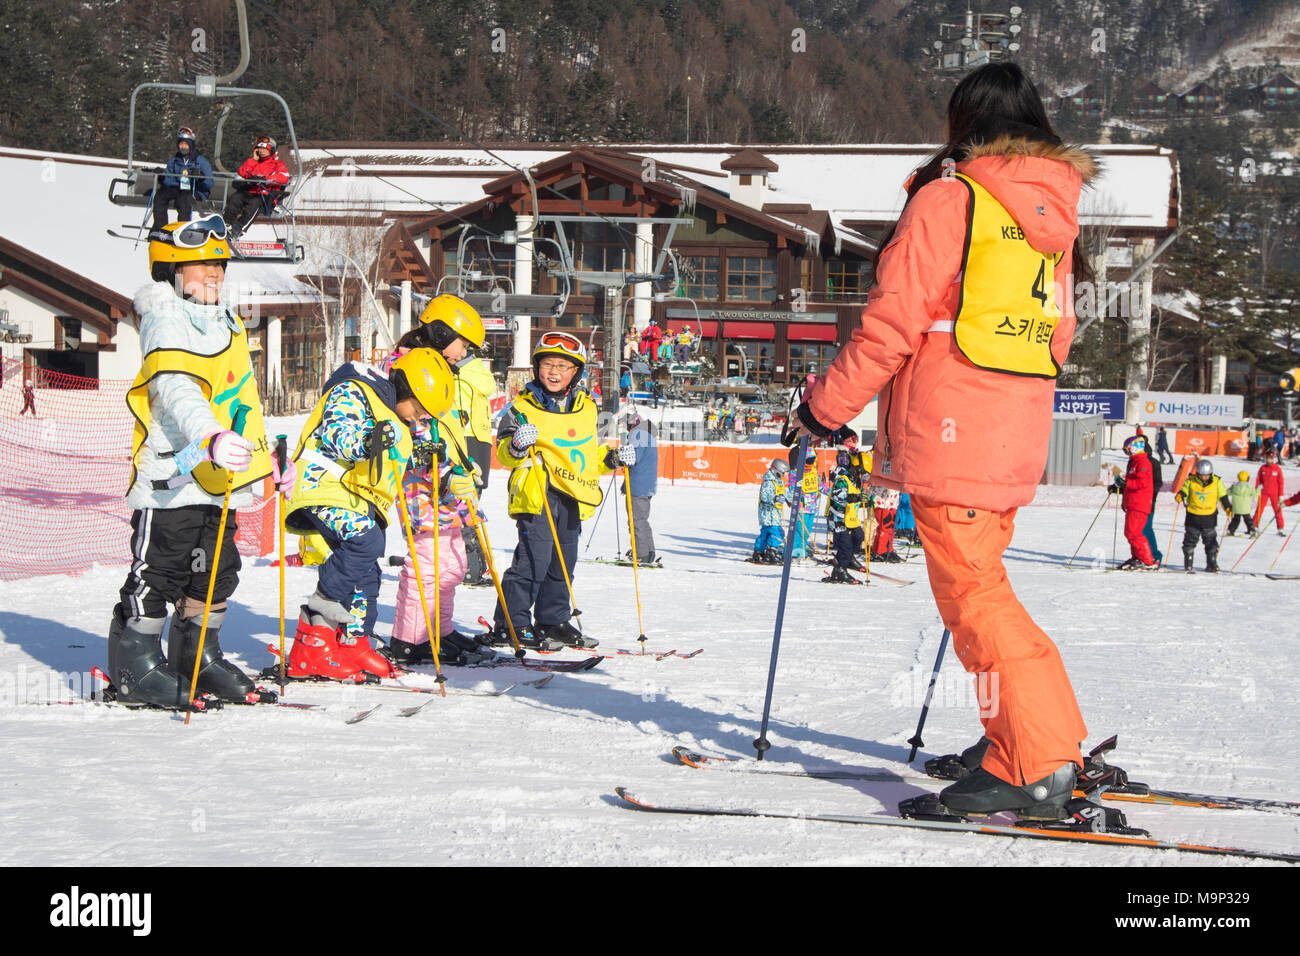 A ski teacher and a group of Asian children at a bunny slope of Yongpyong.  Yongpyong (Dragon Valley) Ski Resort is a ski resort in South Korea, located in Daegwallyeong-myeon, Pyeongchang, Gangwon-do. It is the largest ski and snowboard resort in Korea. Yongpyong will host the technical alpine skiing events for the 2018 Winter Olympics and Paralympics in Pyeongchang. Some scenes of the 2002 Korean Broadcasting System drama Winter Sonata were filmed at the resort. - Stock Image